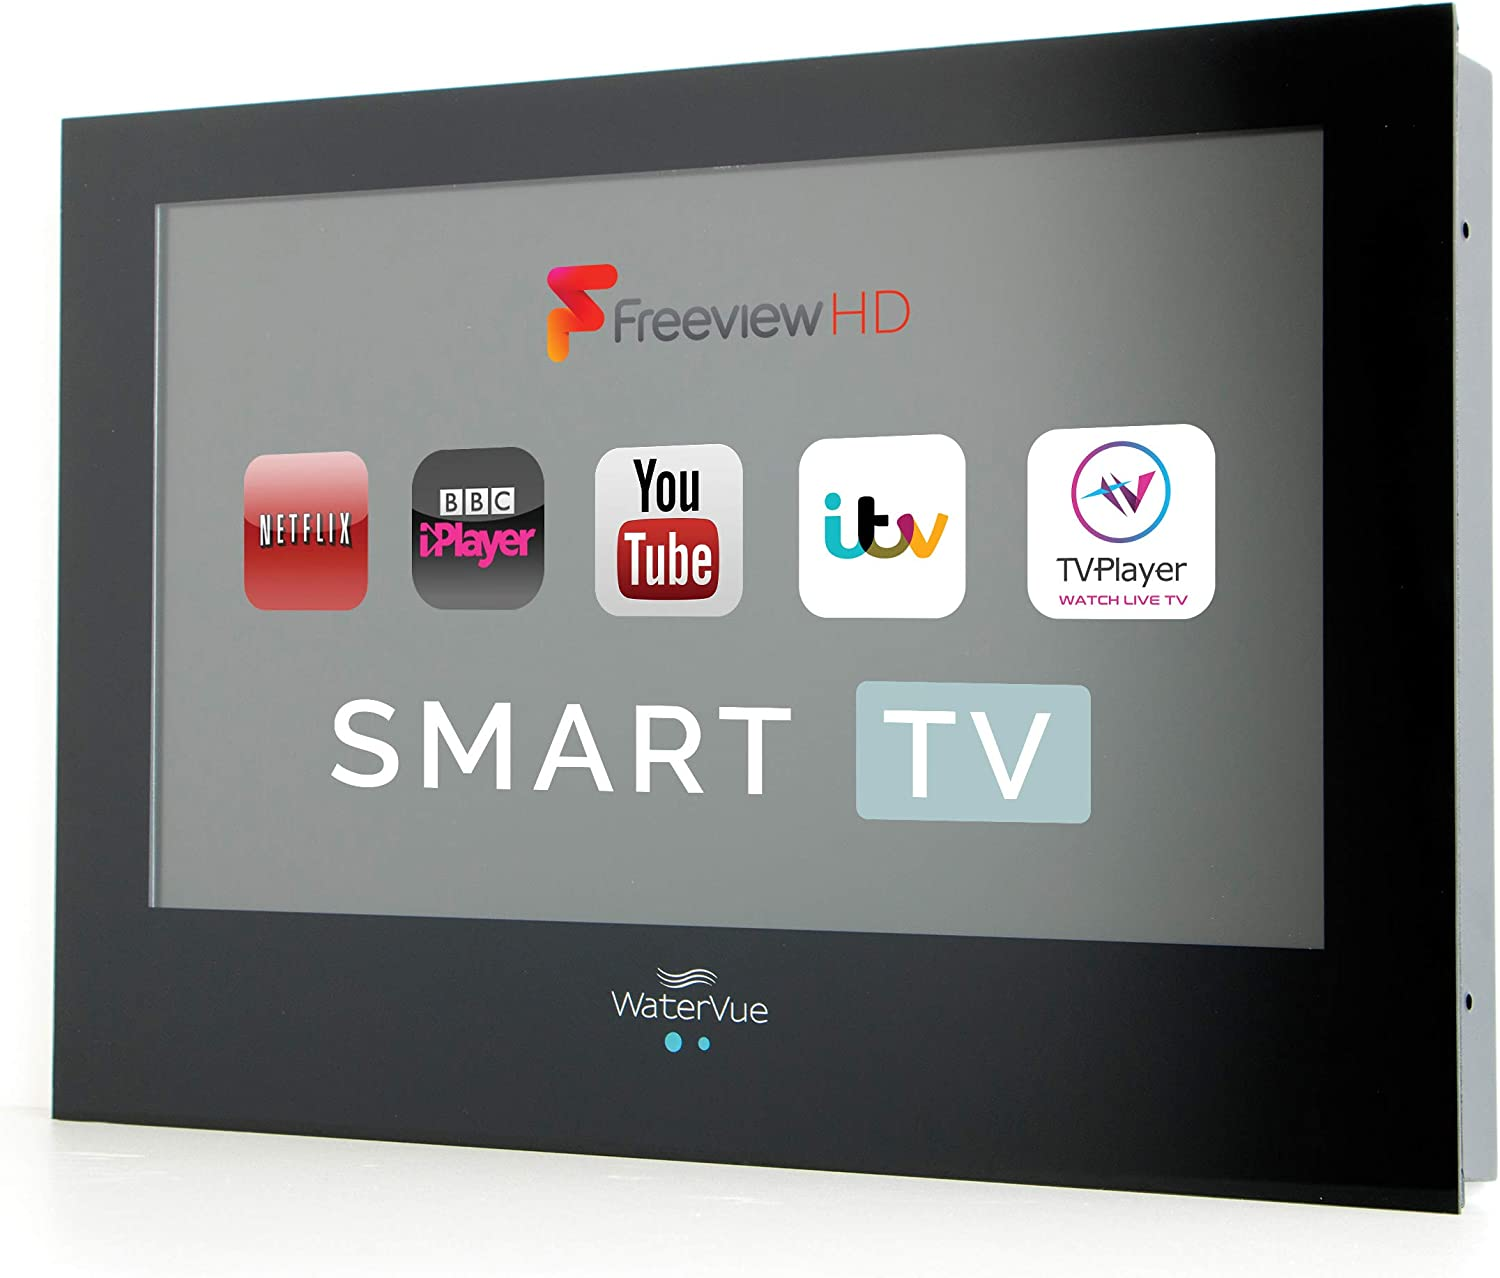 Smart TV impermeable de 24 pulgadas de baño Smart TV: Amazon.es: Electrónica